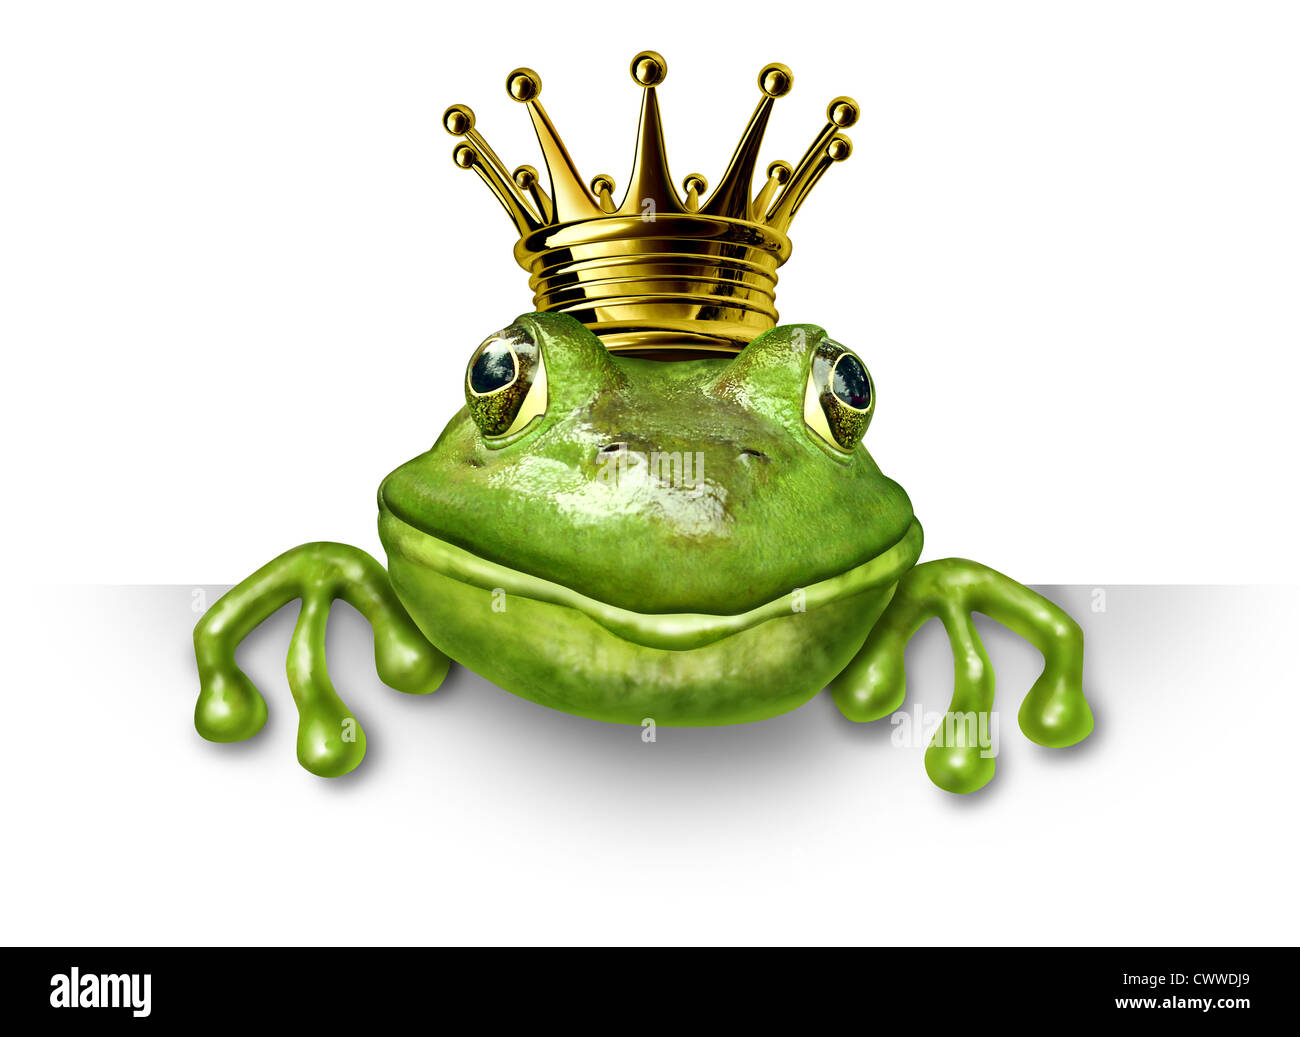 Frog prince with small gold crown holding a blank sign representing the fairy tale concept of change and transformation - Stock Image